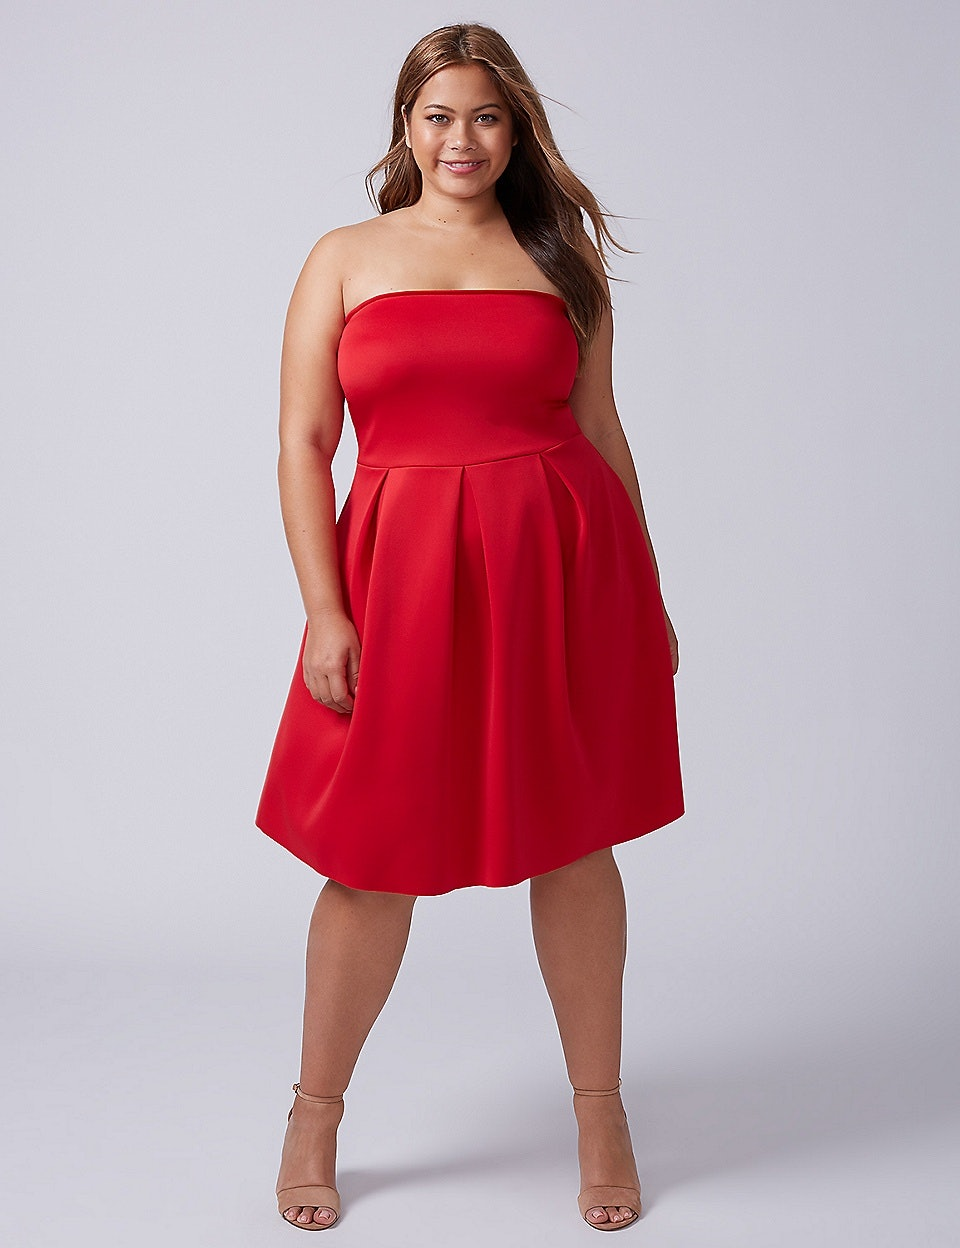 50 Plus Size Holiday Dresses That Deserve A Spot In Your Closet Jolie Clothing Rhey Tulle Skirt